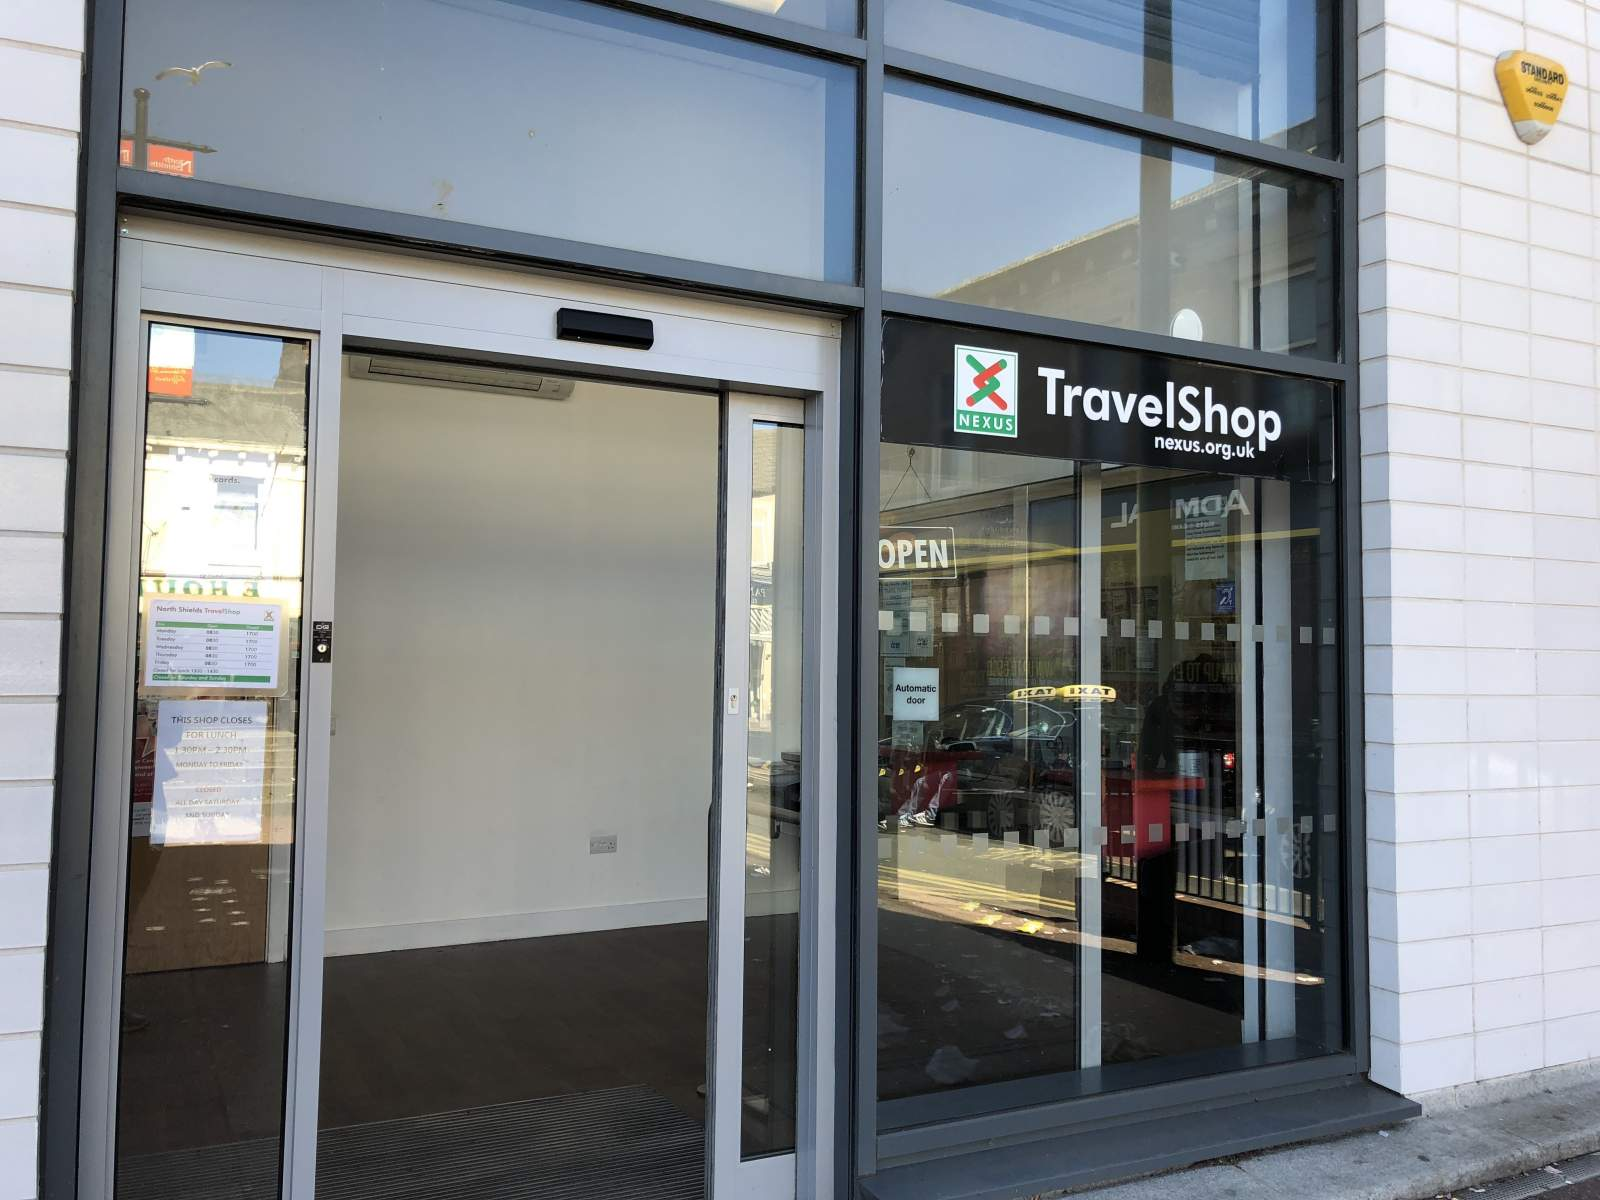 Travelshop Nexus shop front North Shields